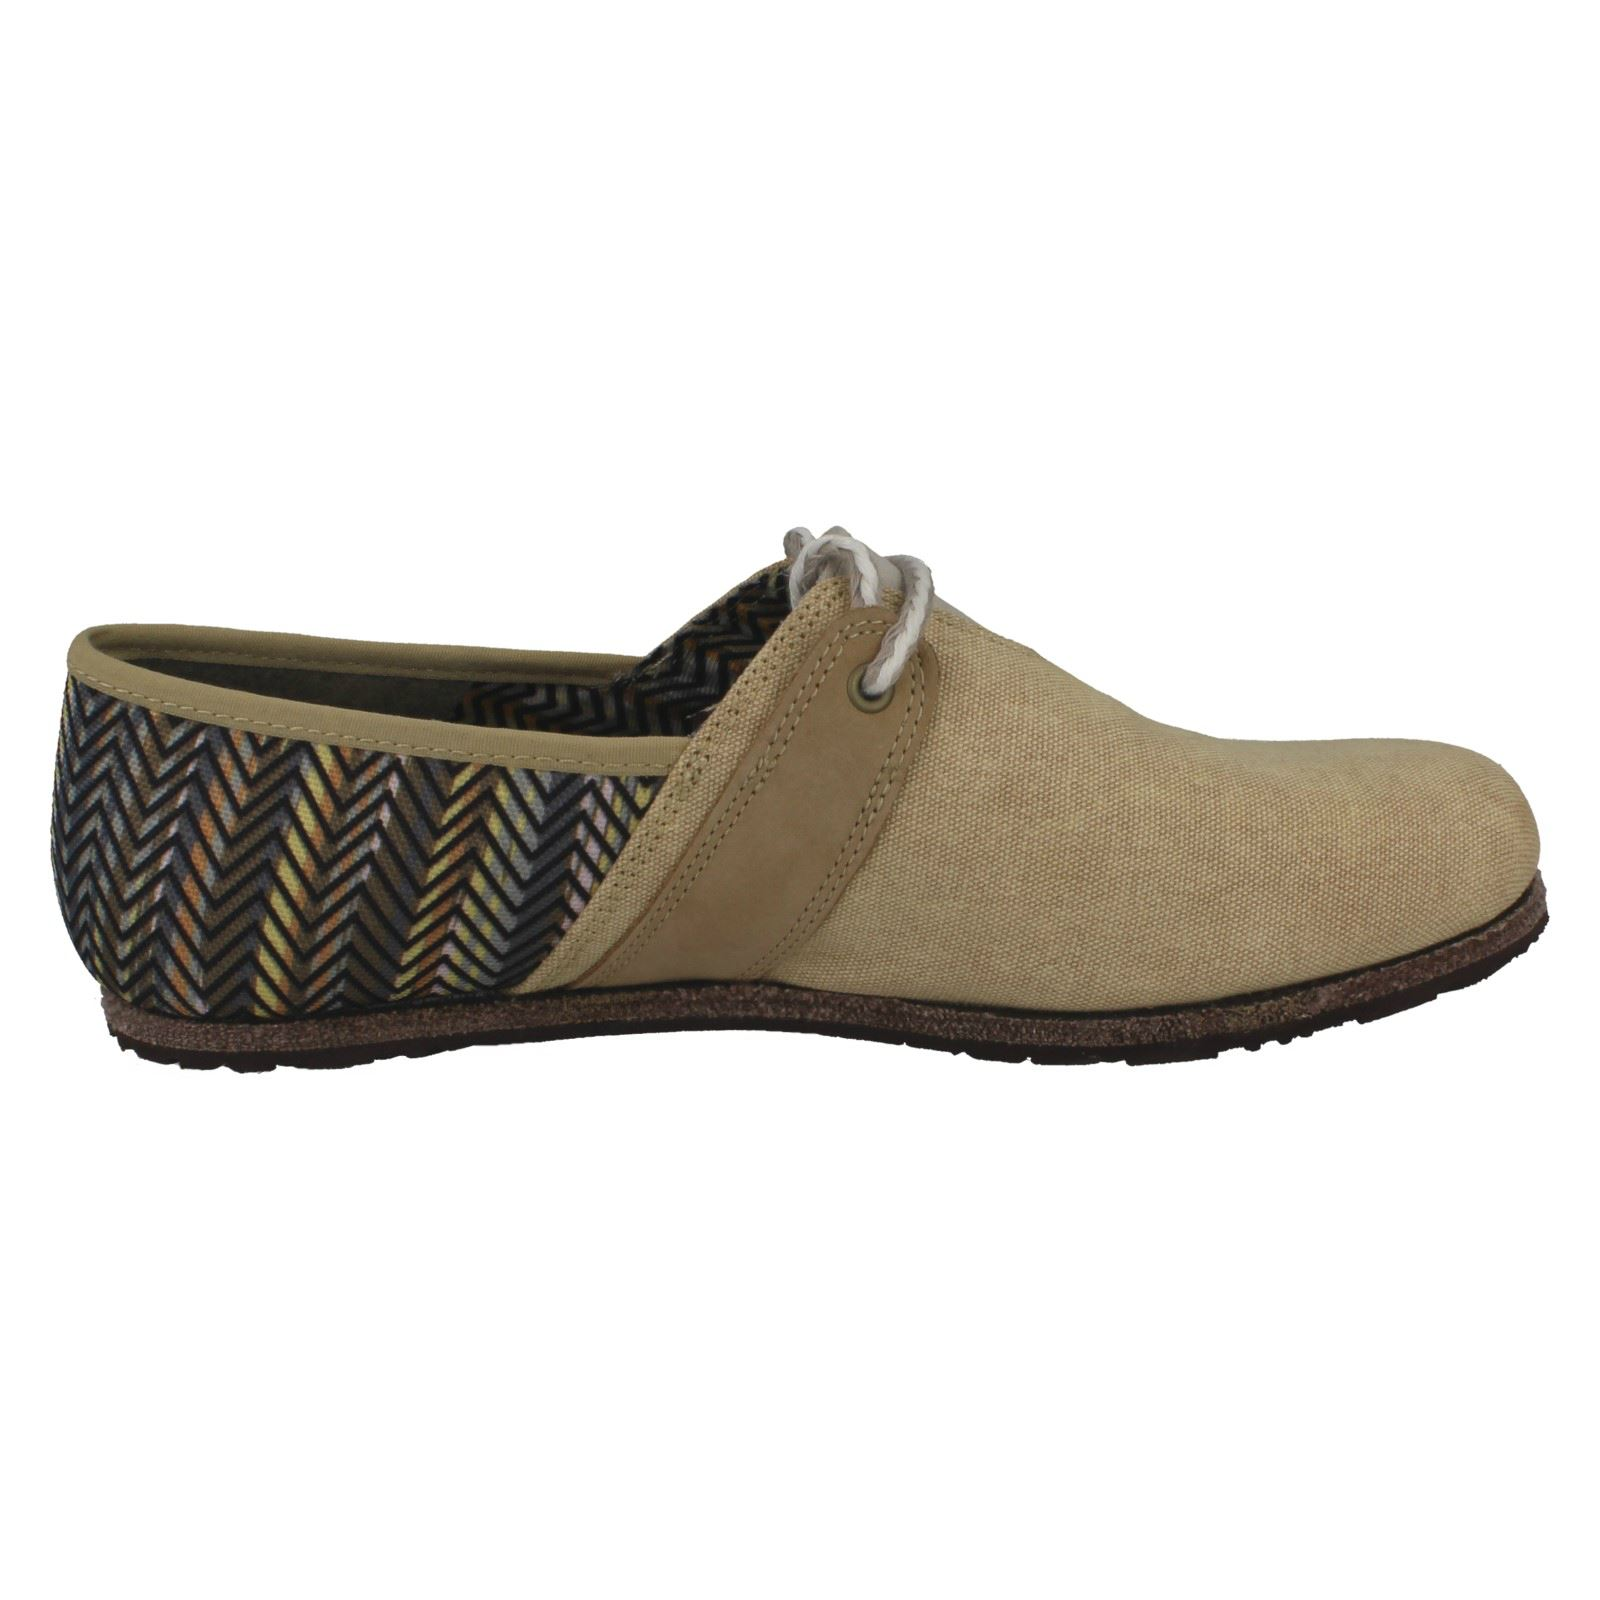 Ladies-Merrell-Casual-Flat-Shoes-039-Artemisia-039 thumbnail 8